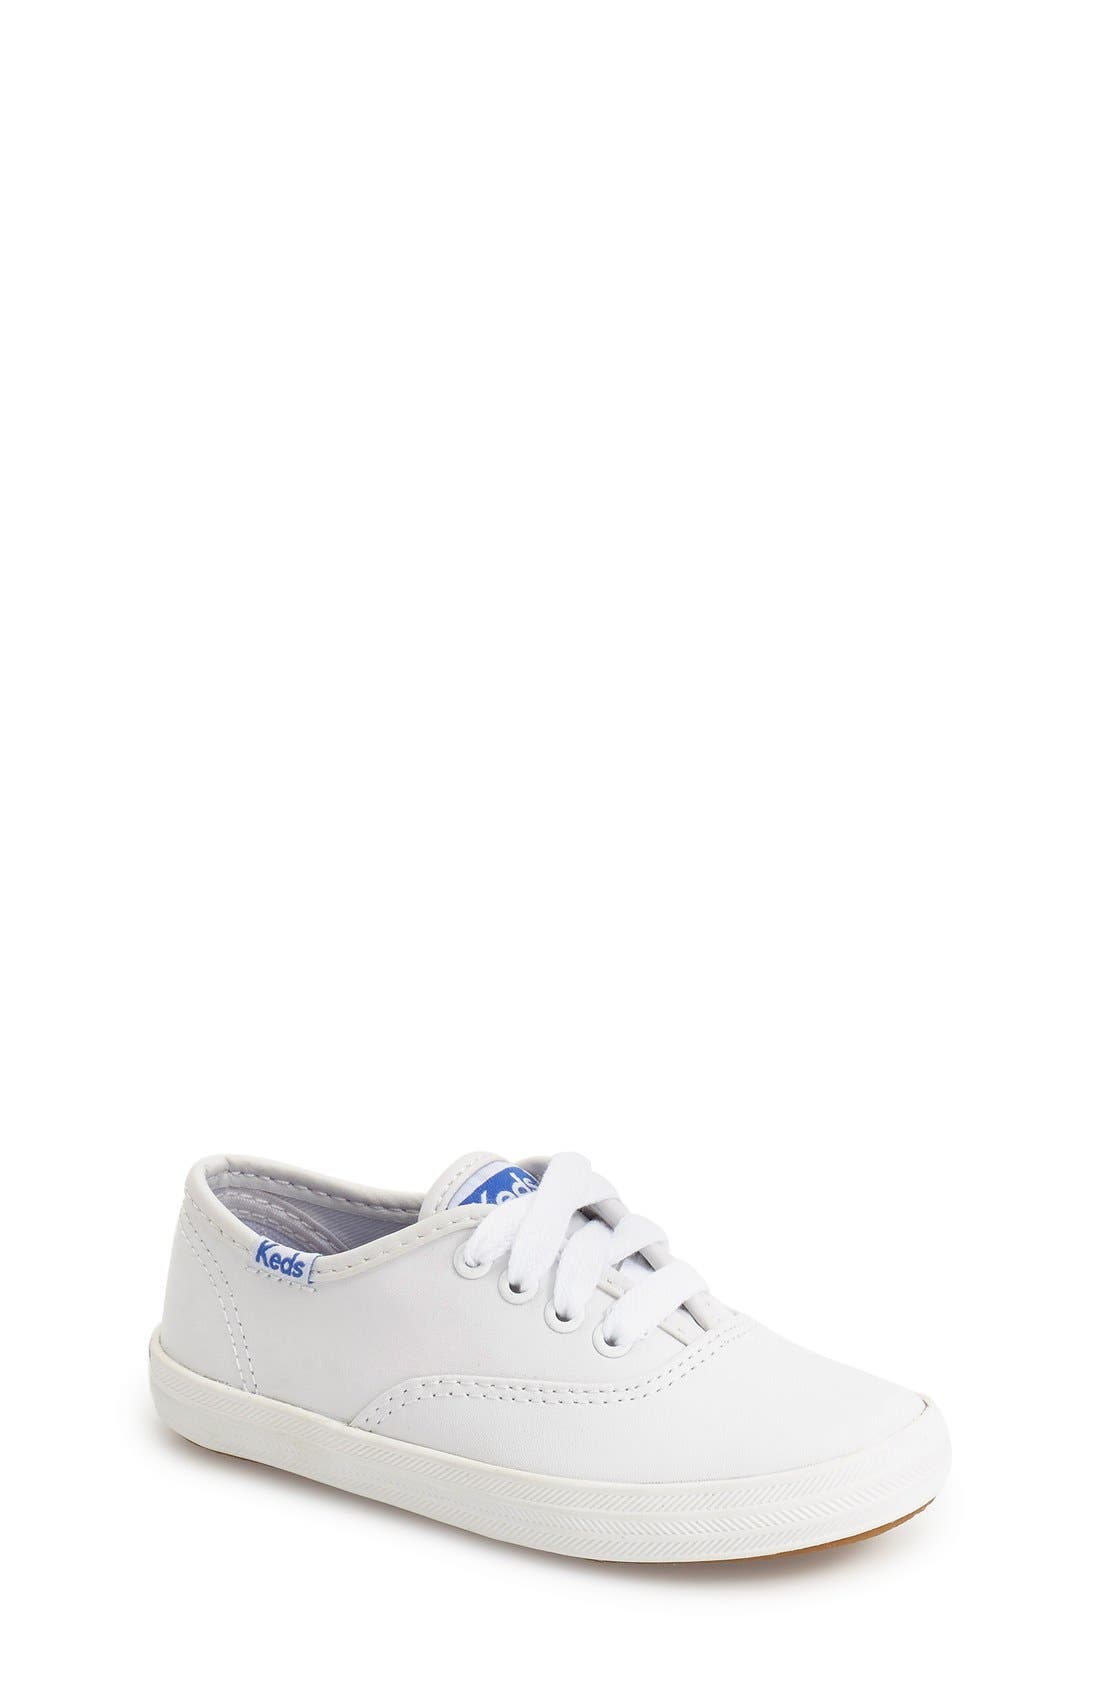 Main Image - Keds® 'Champion - CVO' Sneaker (Walker, Toddler, Little Kid & Big Kid)